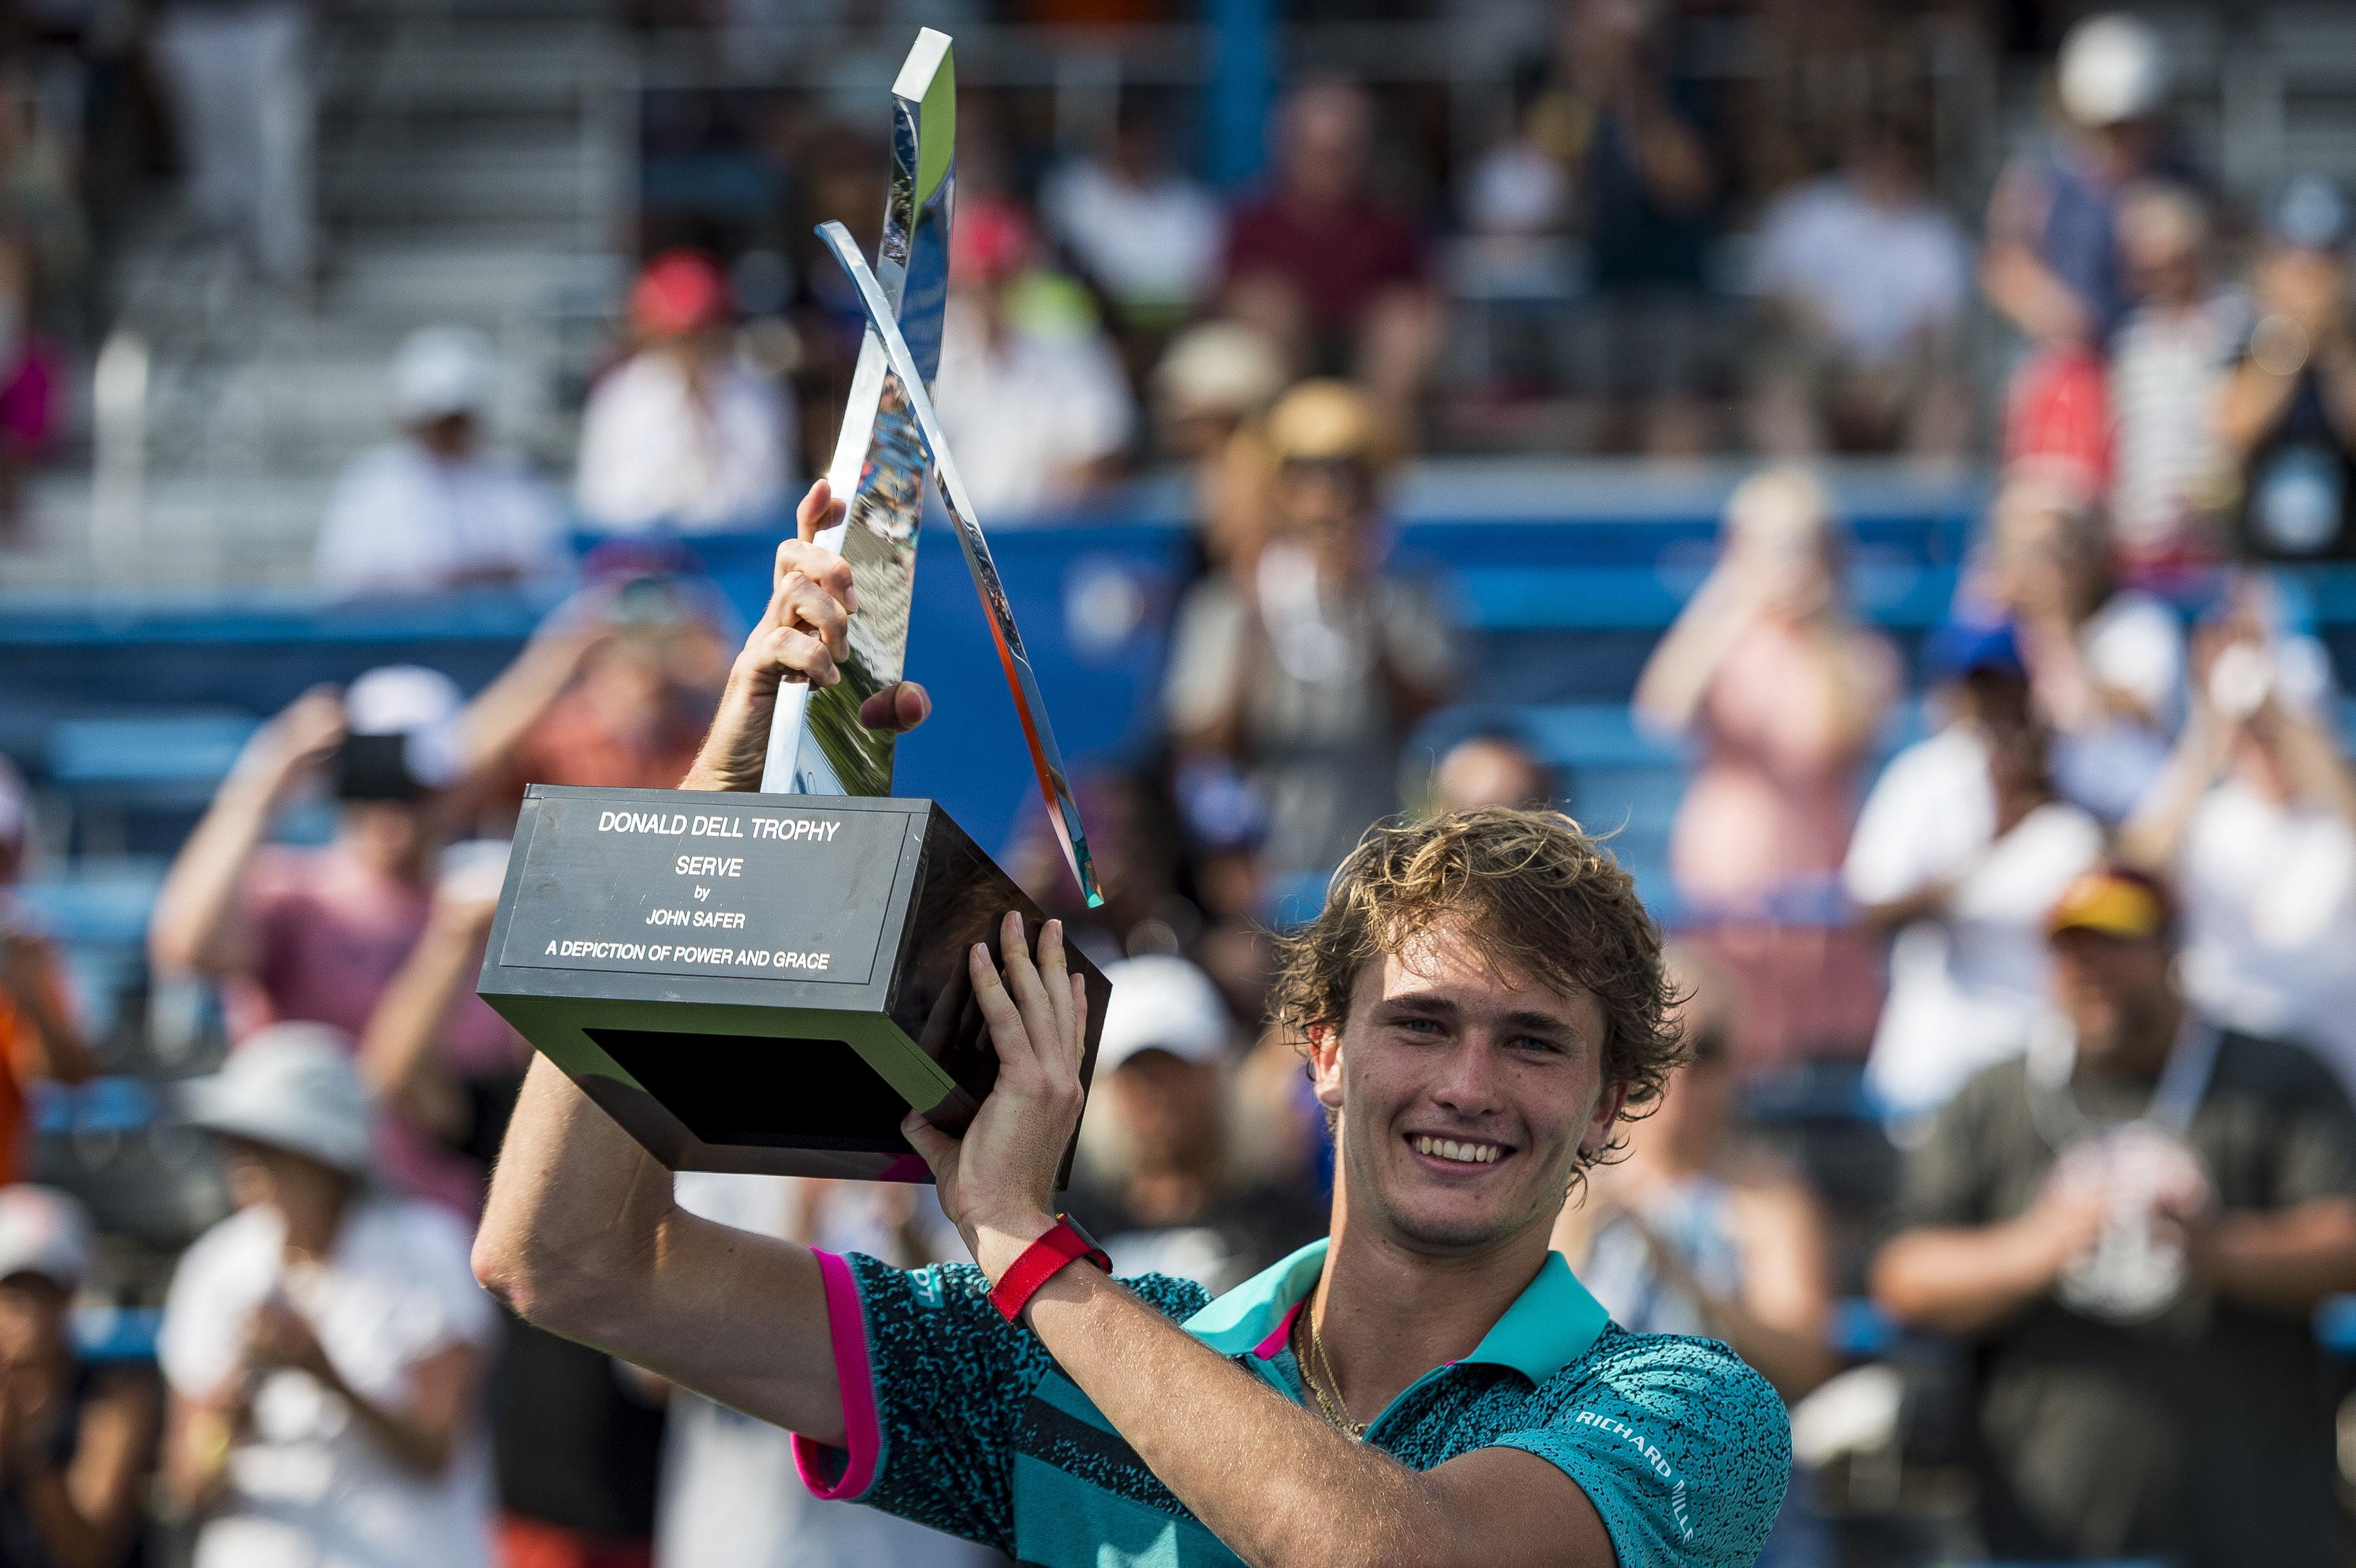 Zverev won the Citi Open in Washington earlier this month, good preparation ahead of Flushing Meadows